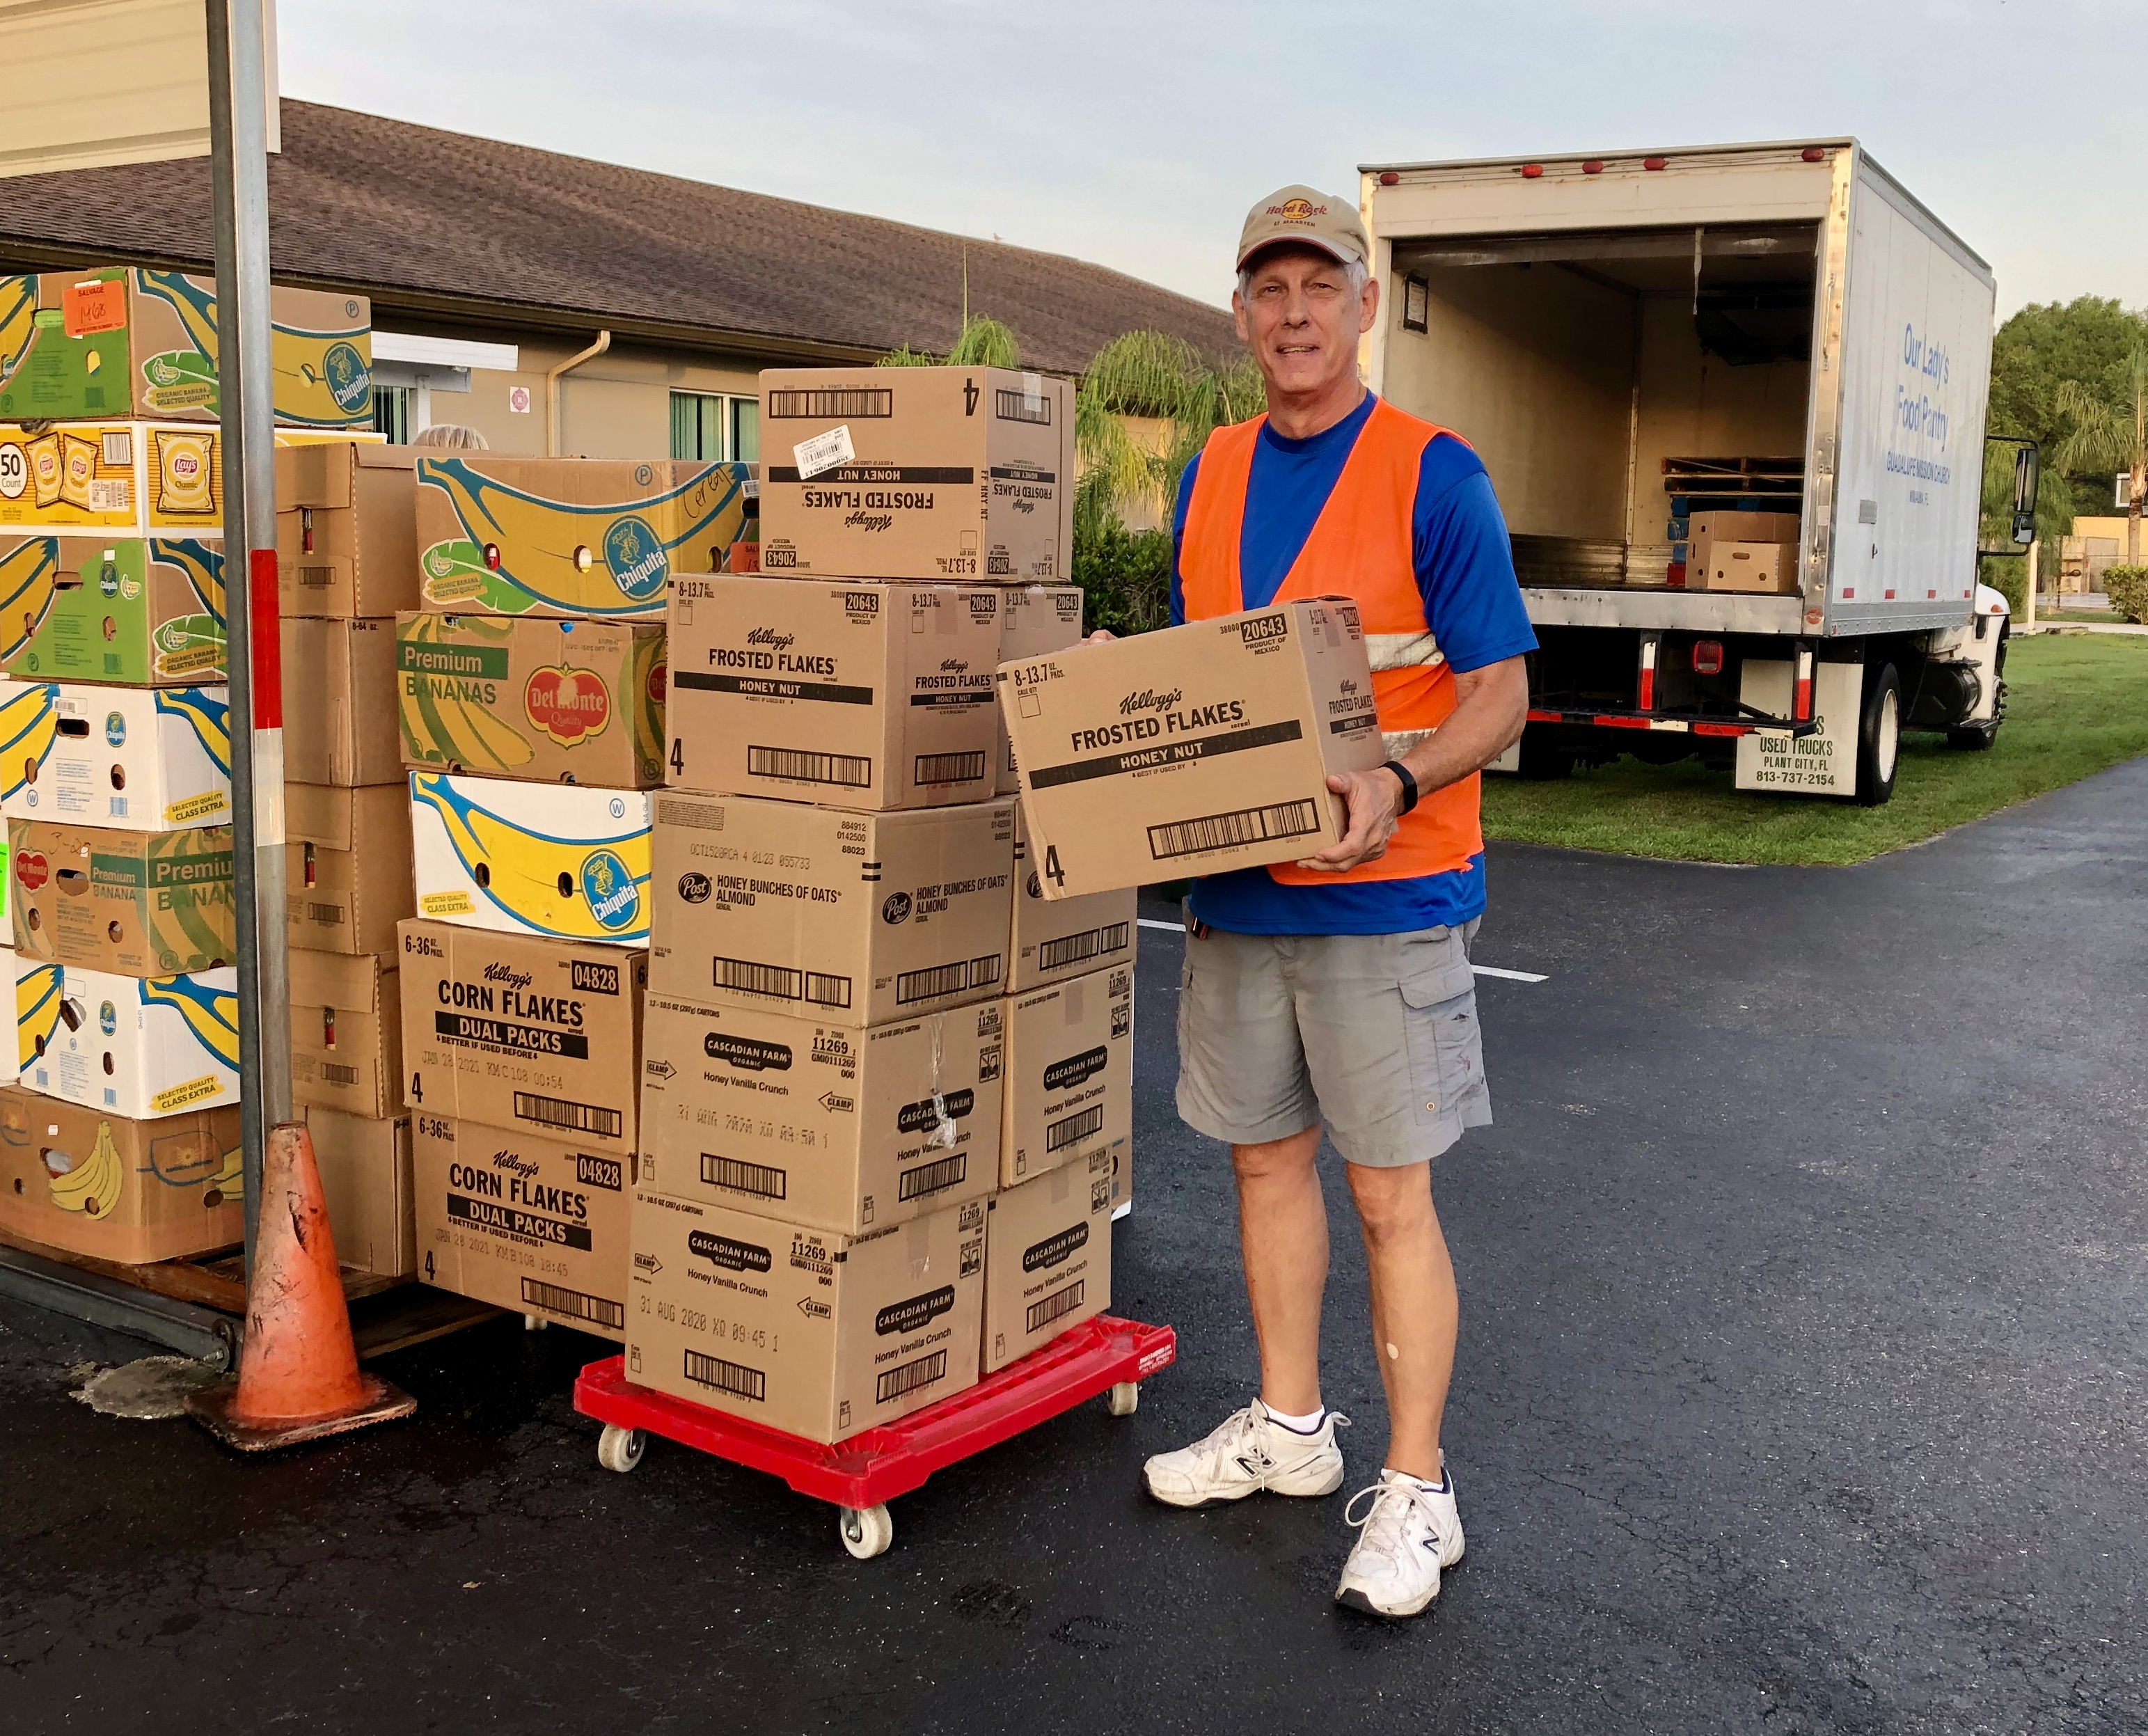 Man holding big box of food, pantry truck in background